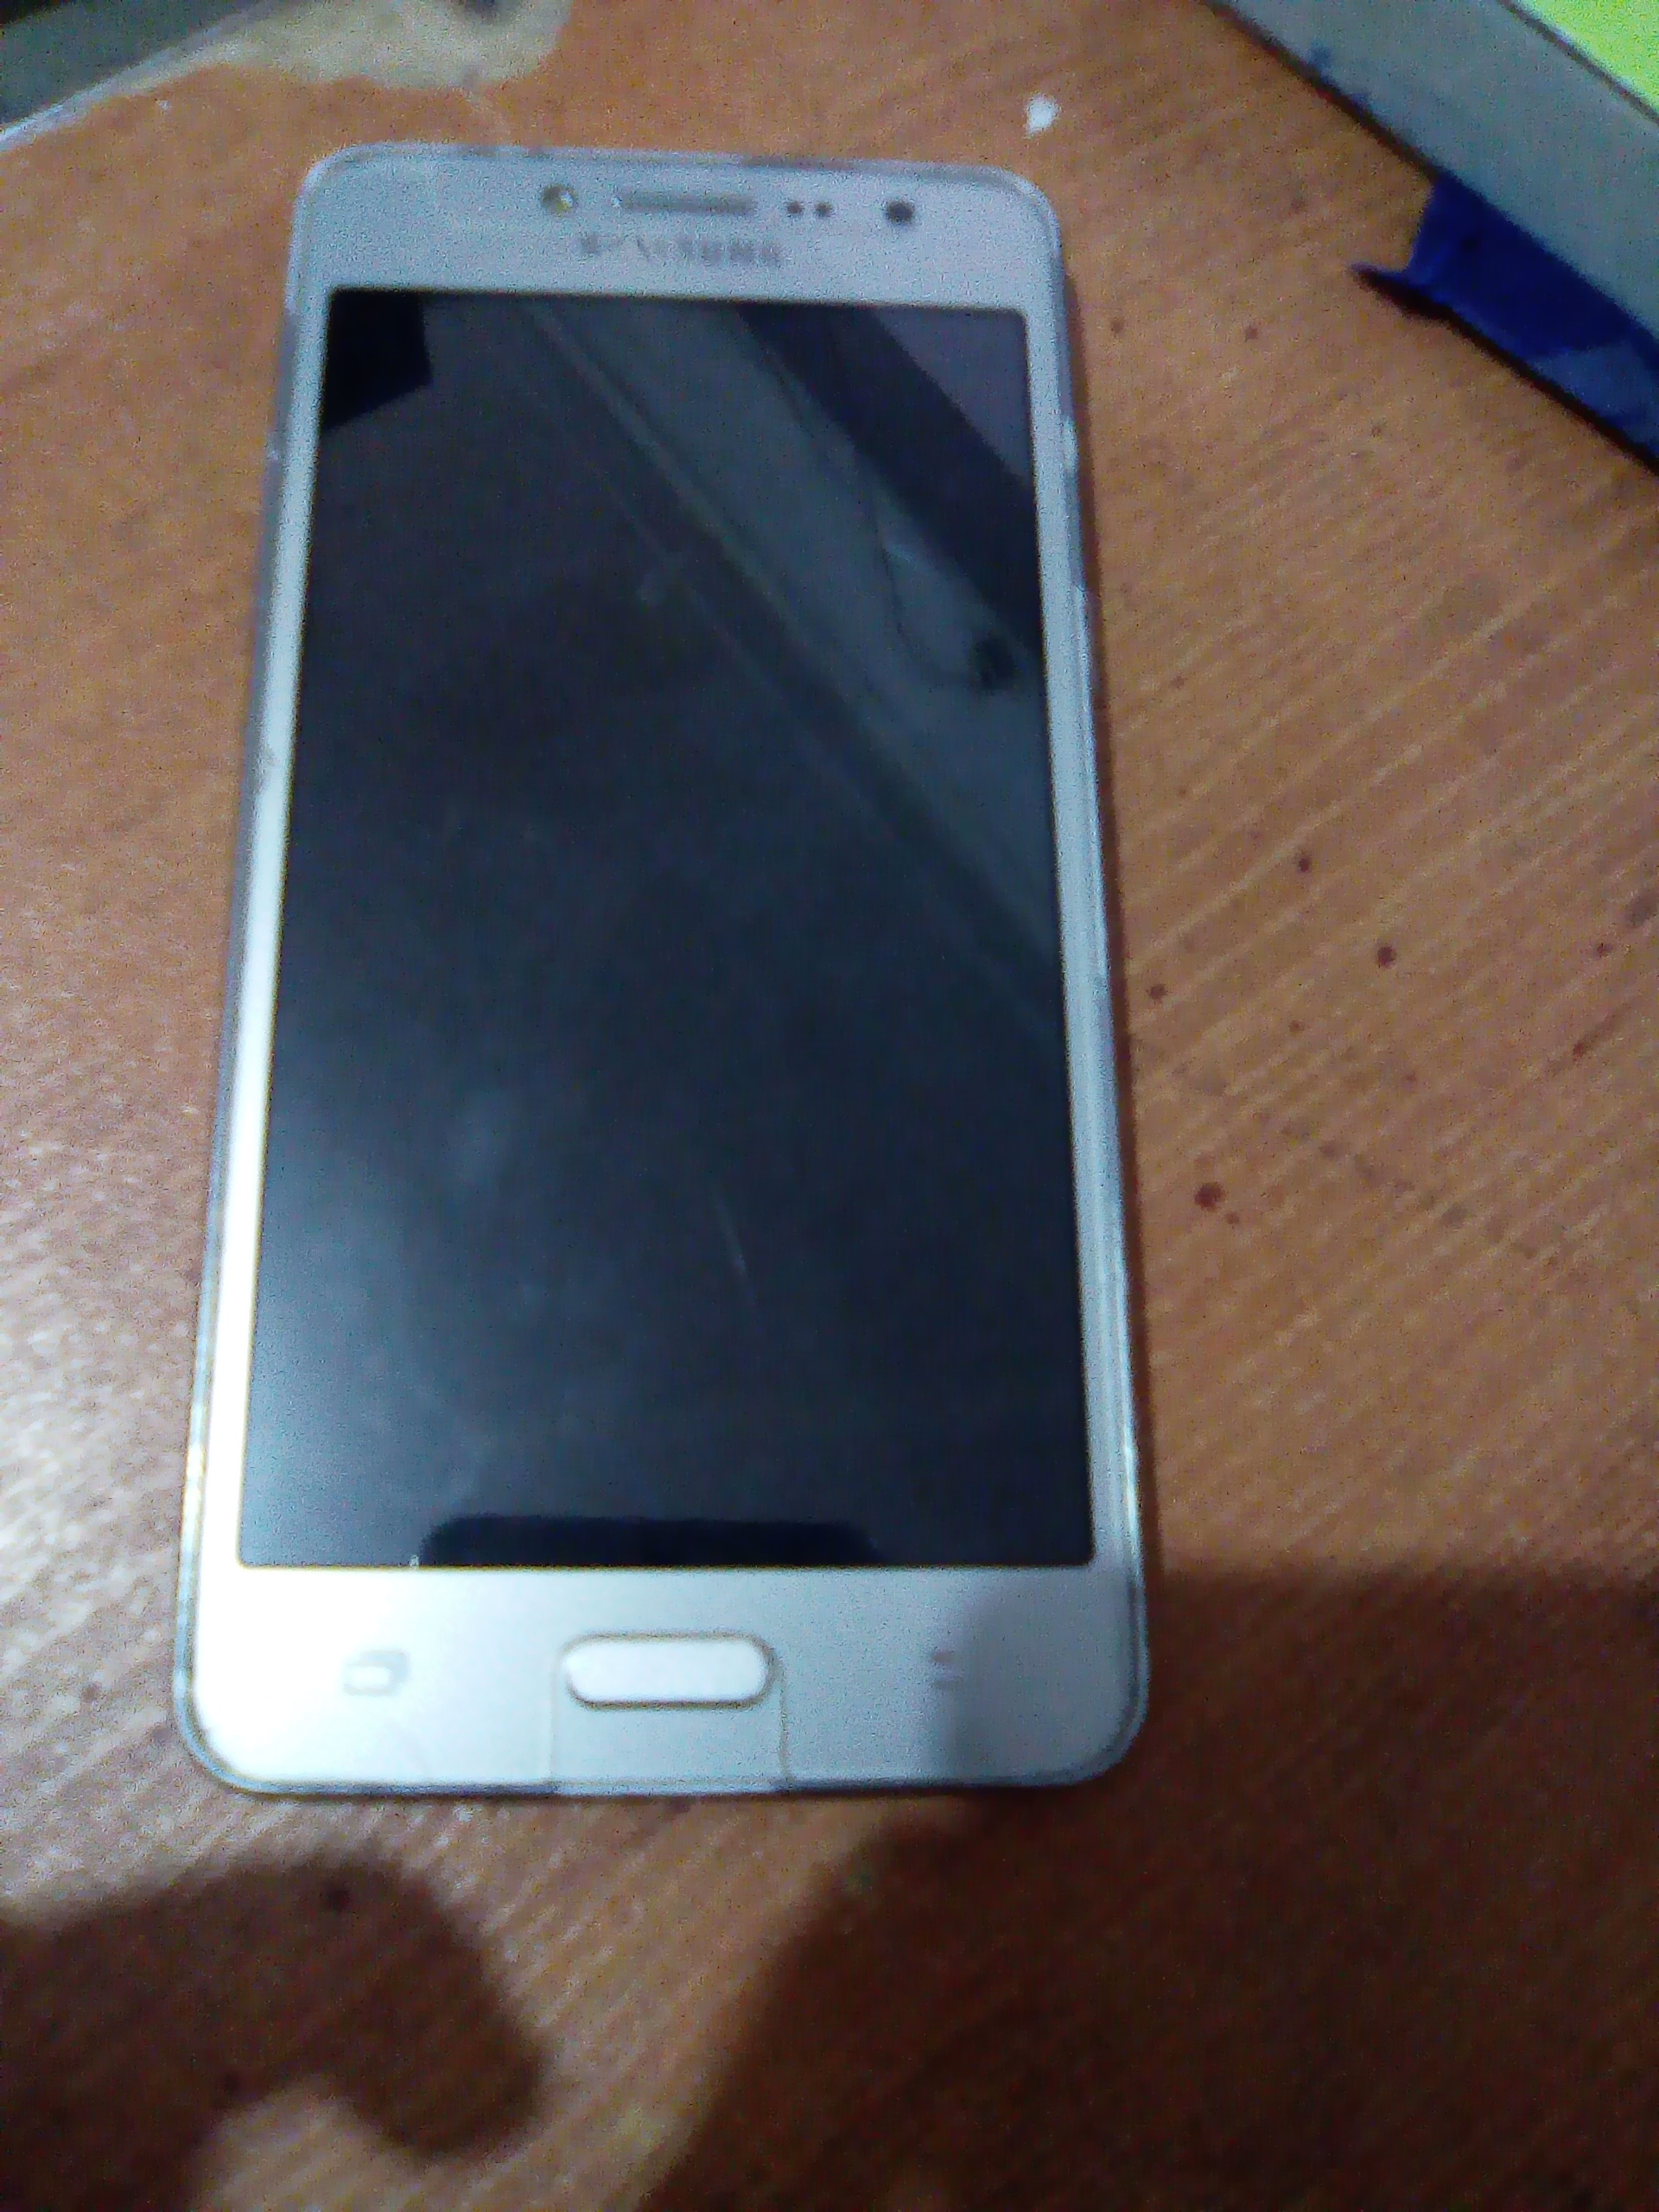 Sumsung galaxy grand prime plus for sale - photo 1